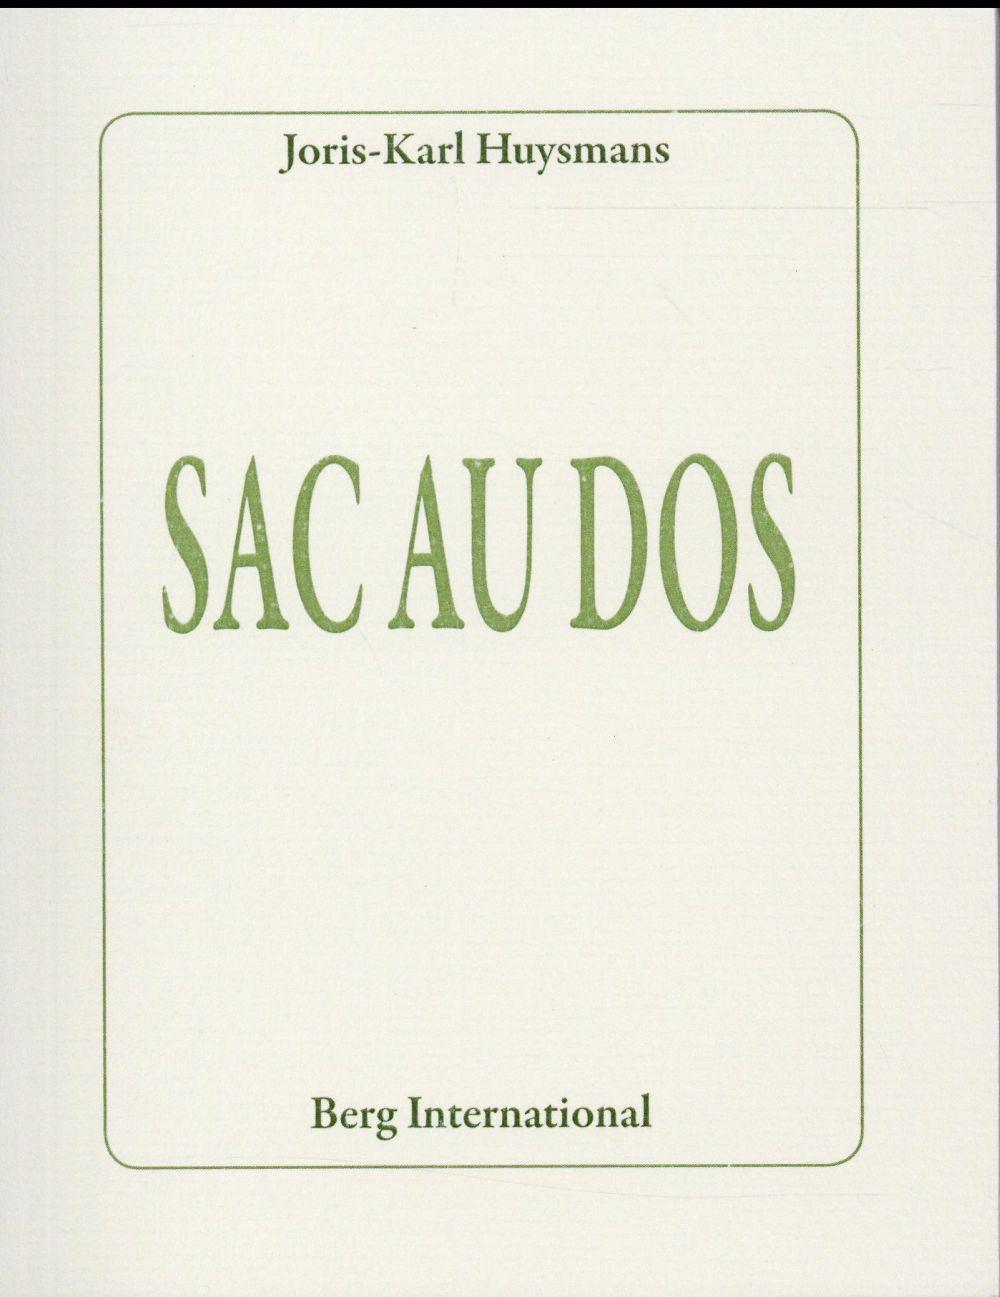 Sac au dos  - Joris-Karl Huysmans